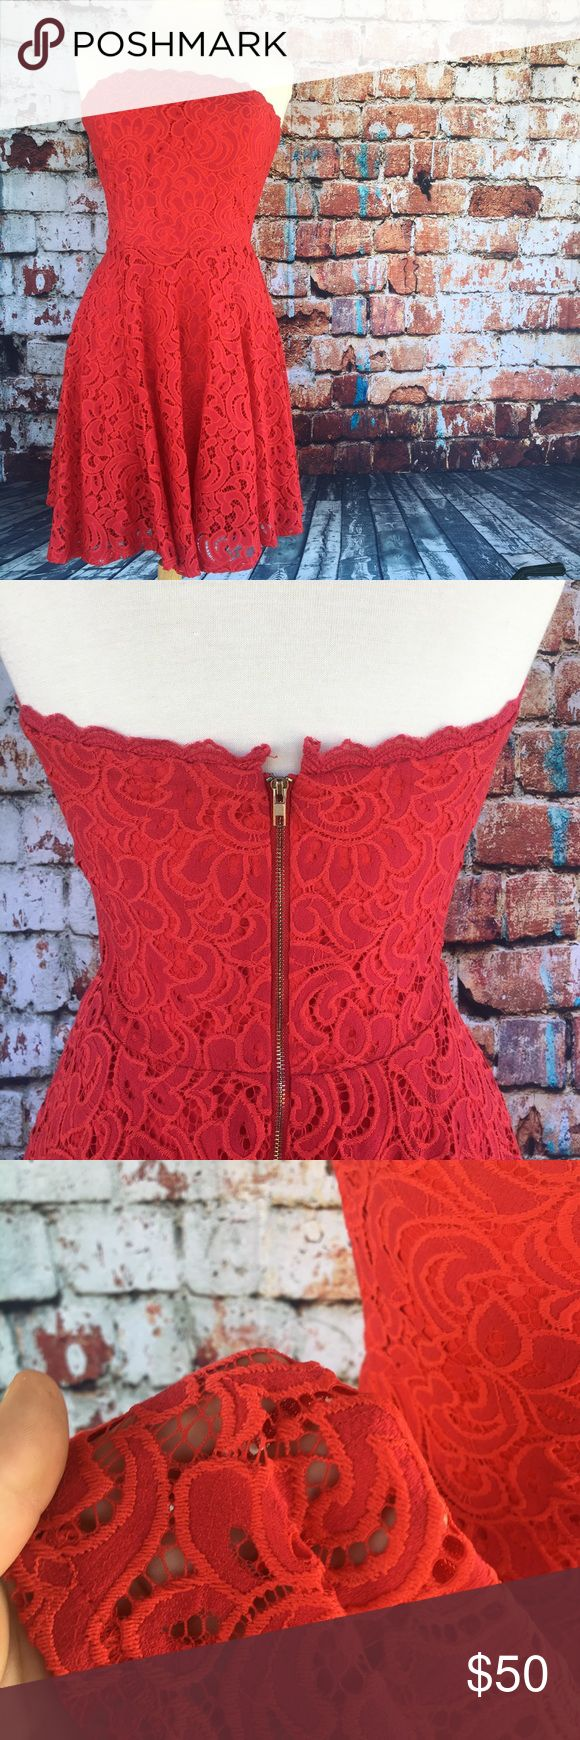 🔥Strapless lace dress🔥 Gorgeous coral red lace dress, features padded cups, a half zipper, and a perfect flattering fit! Runs a tiny bit small, probably perfect for someone who is between a medium and large. jun & ivy Dresses Strapless